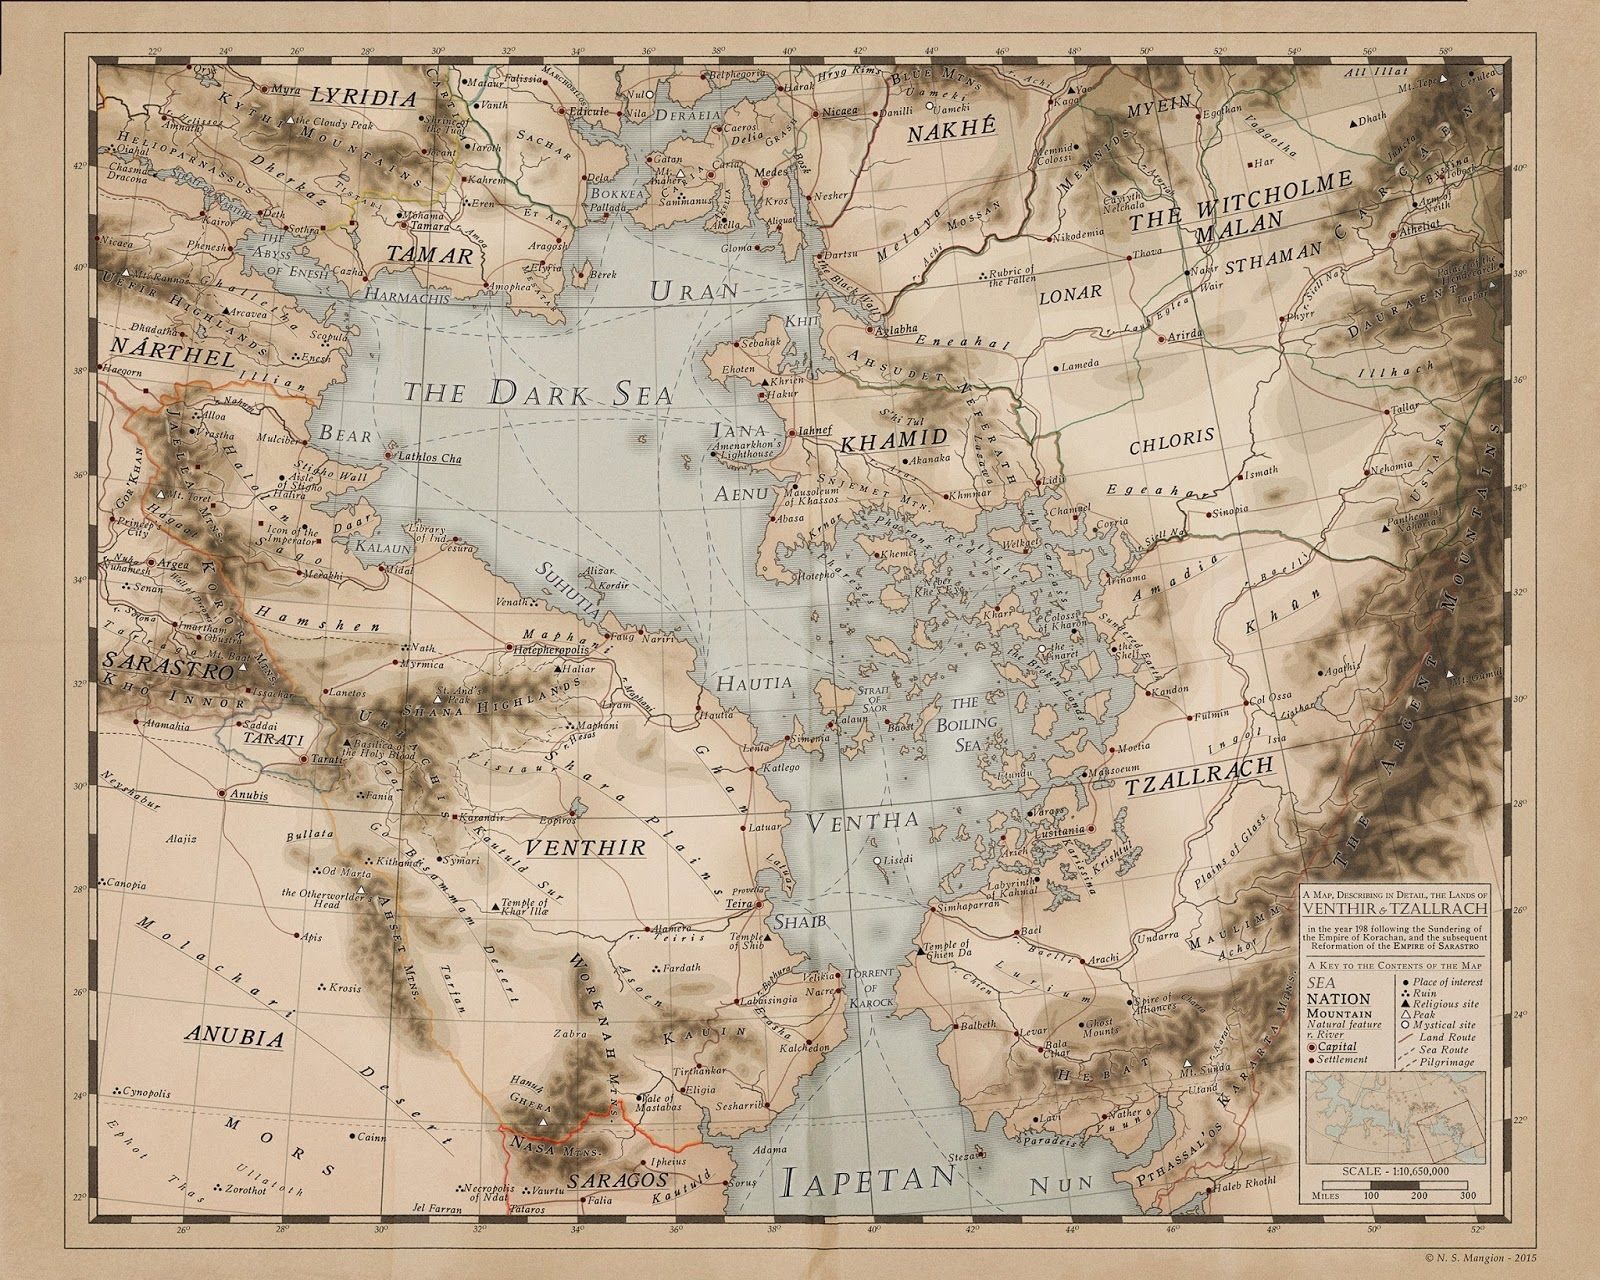 Elyden worldbuilding cartography and conlanging in the world of elyden worldbuilding cartography and conlanging in the world of elyden a map of gumiabroncs Gallery